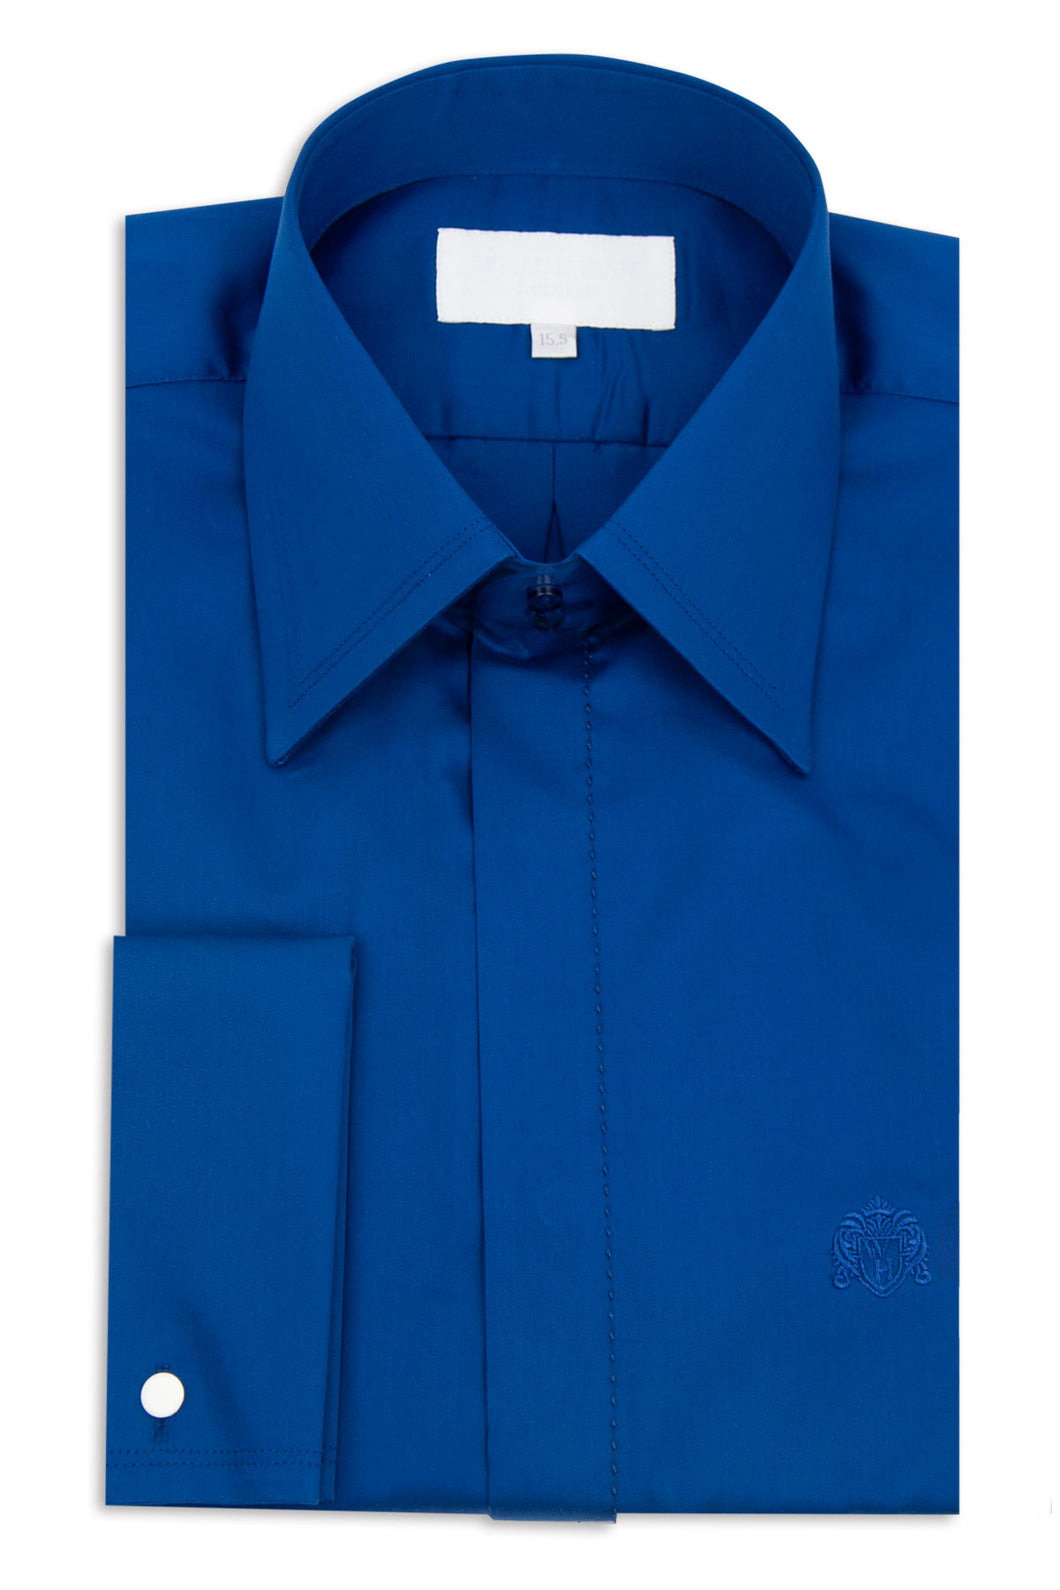 Classic Royal Blue Forward Point Collar Shirt